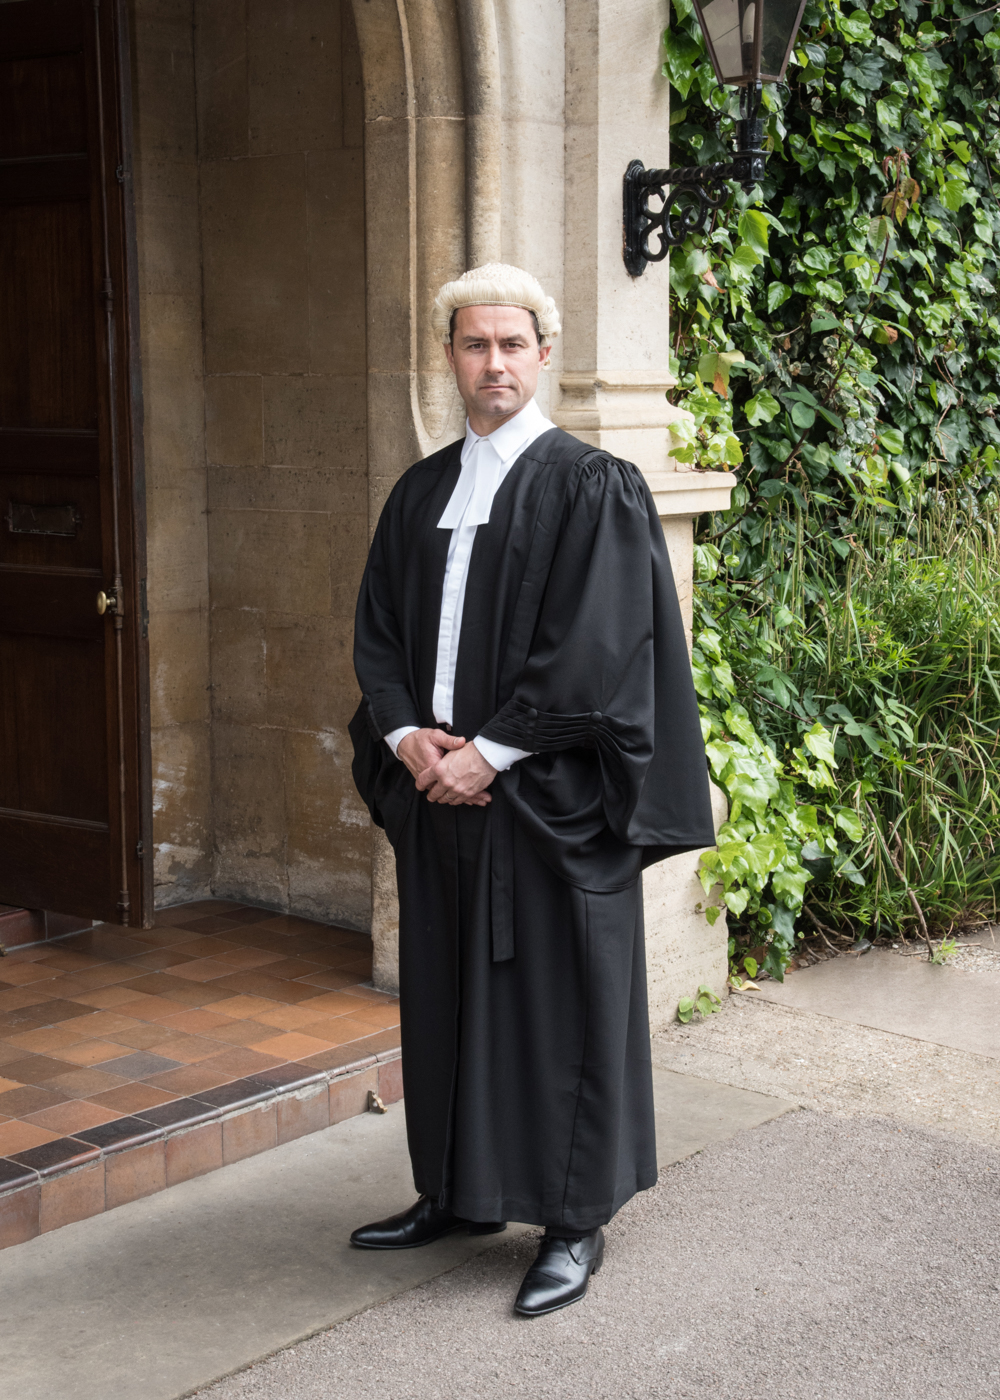 Barristers Gown 5a25db5a5304